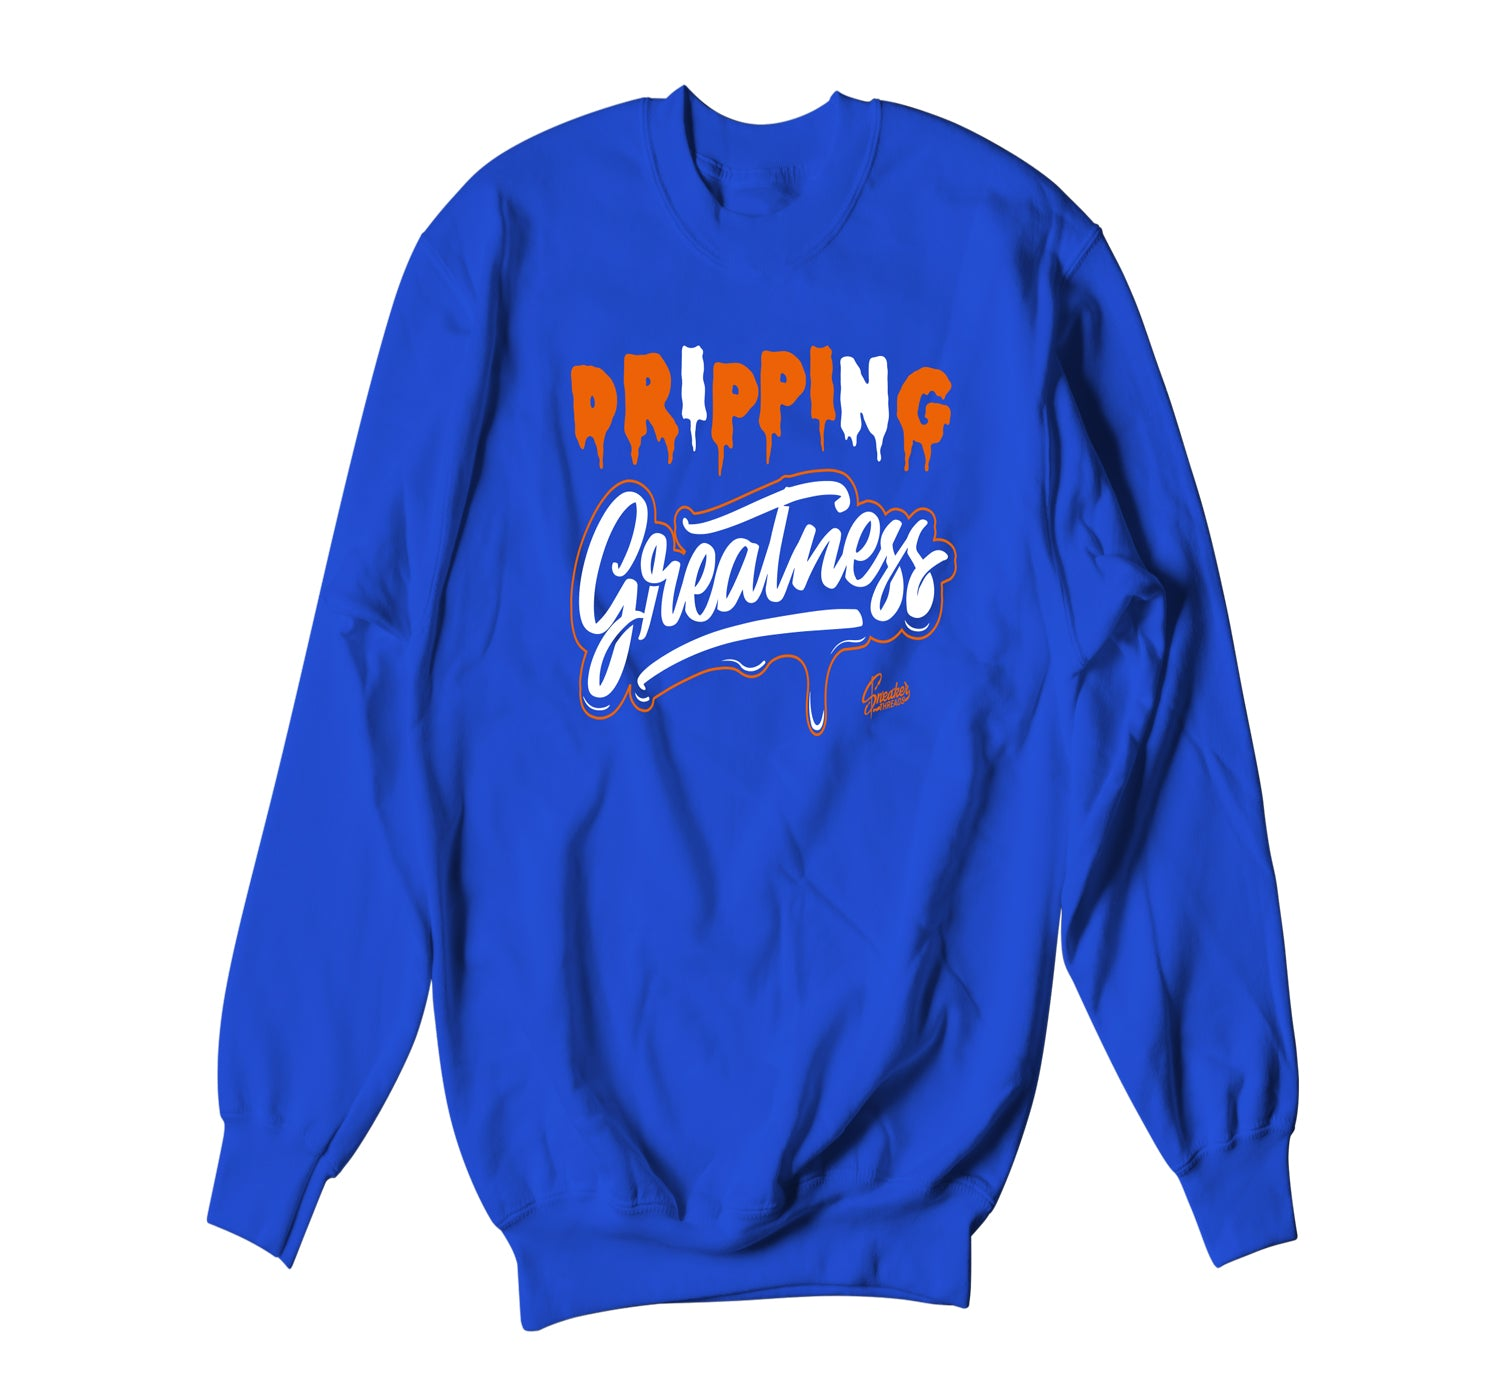 Jordan 3 Knicks Dripping Greatness Sweater